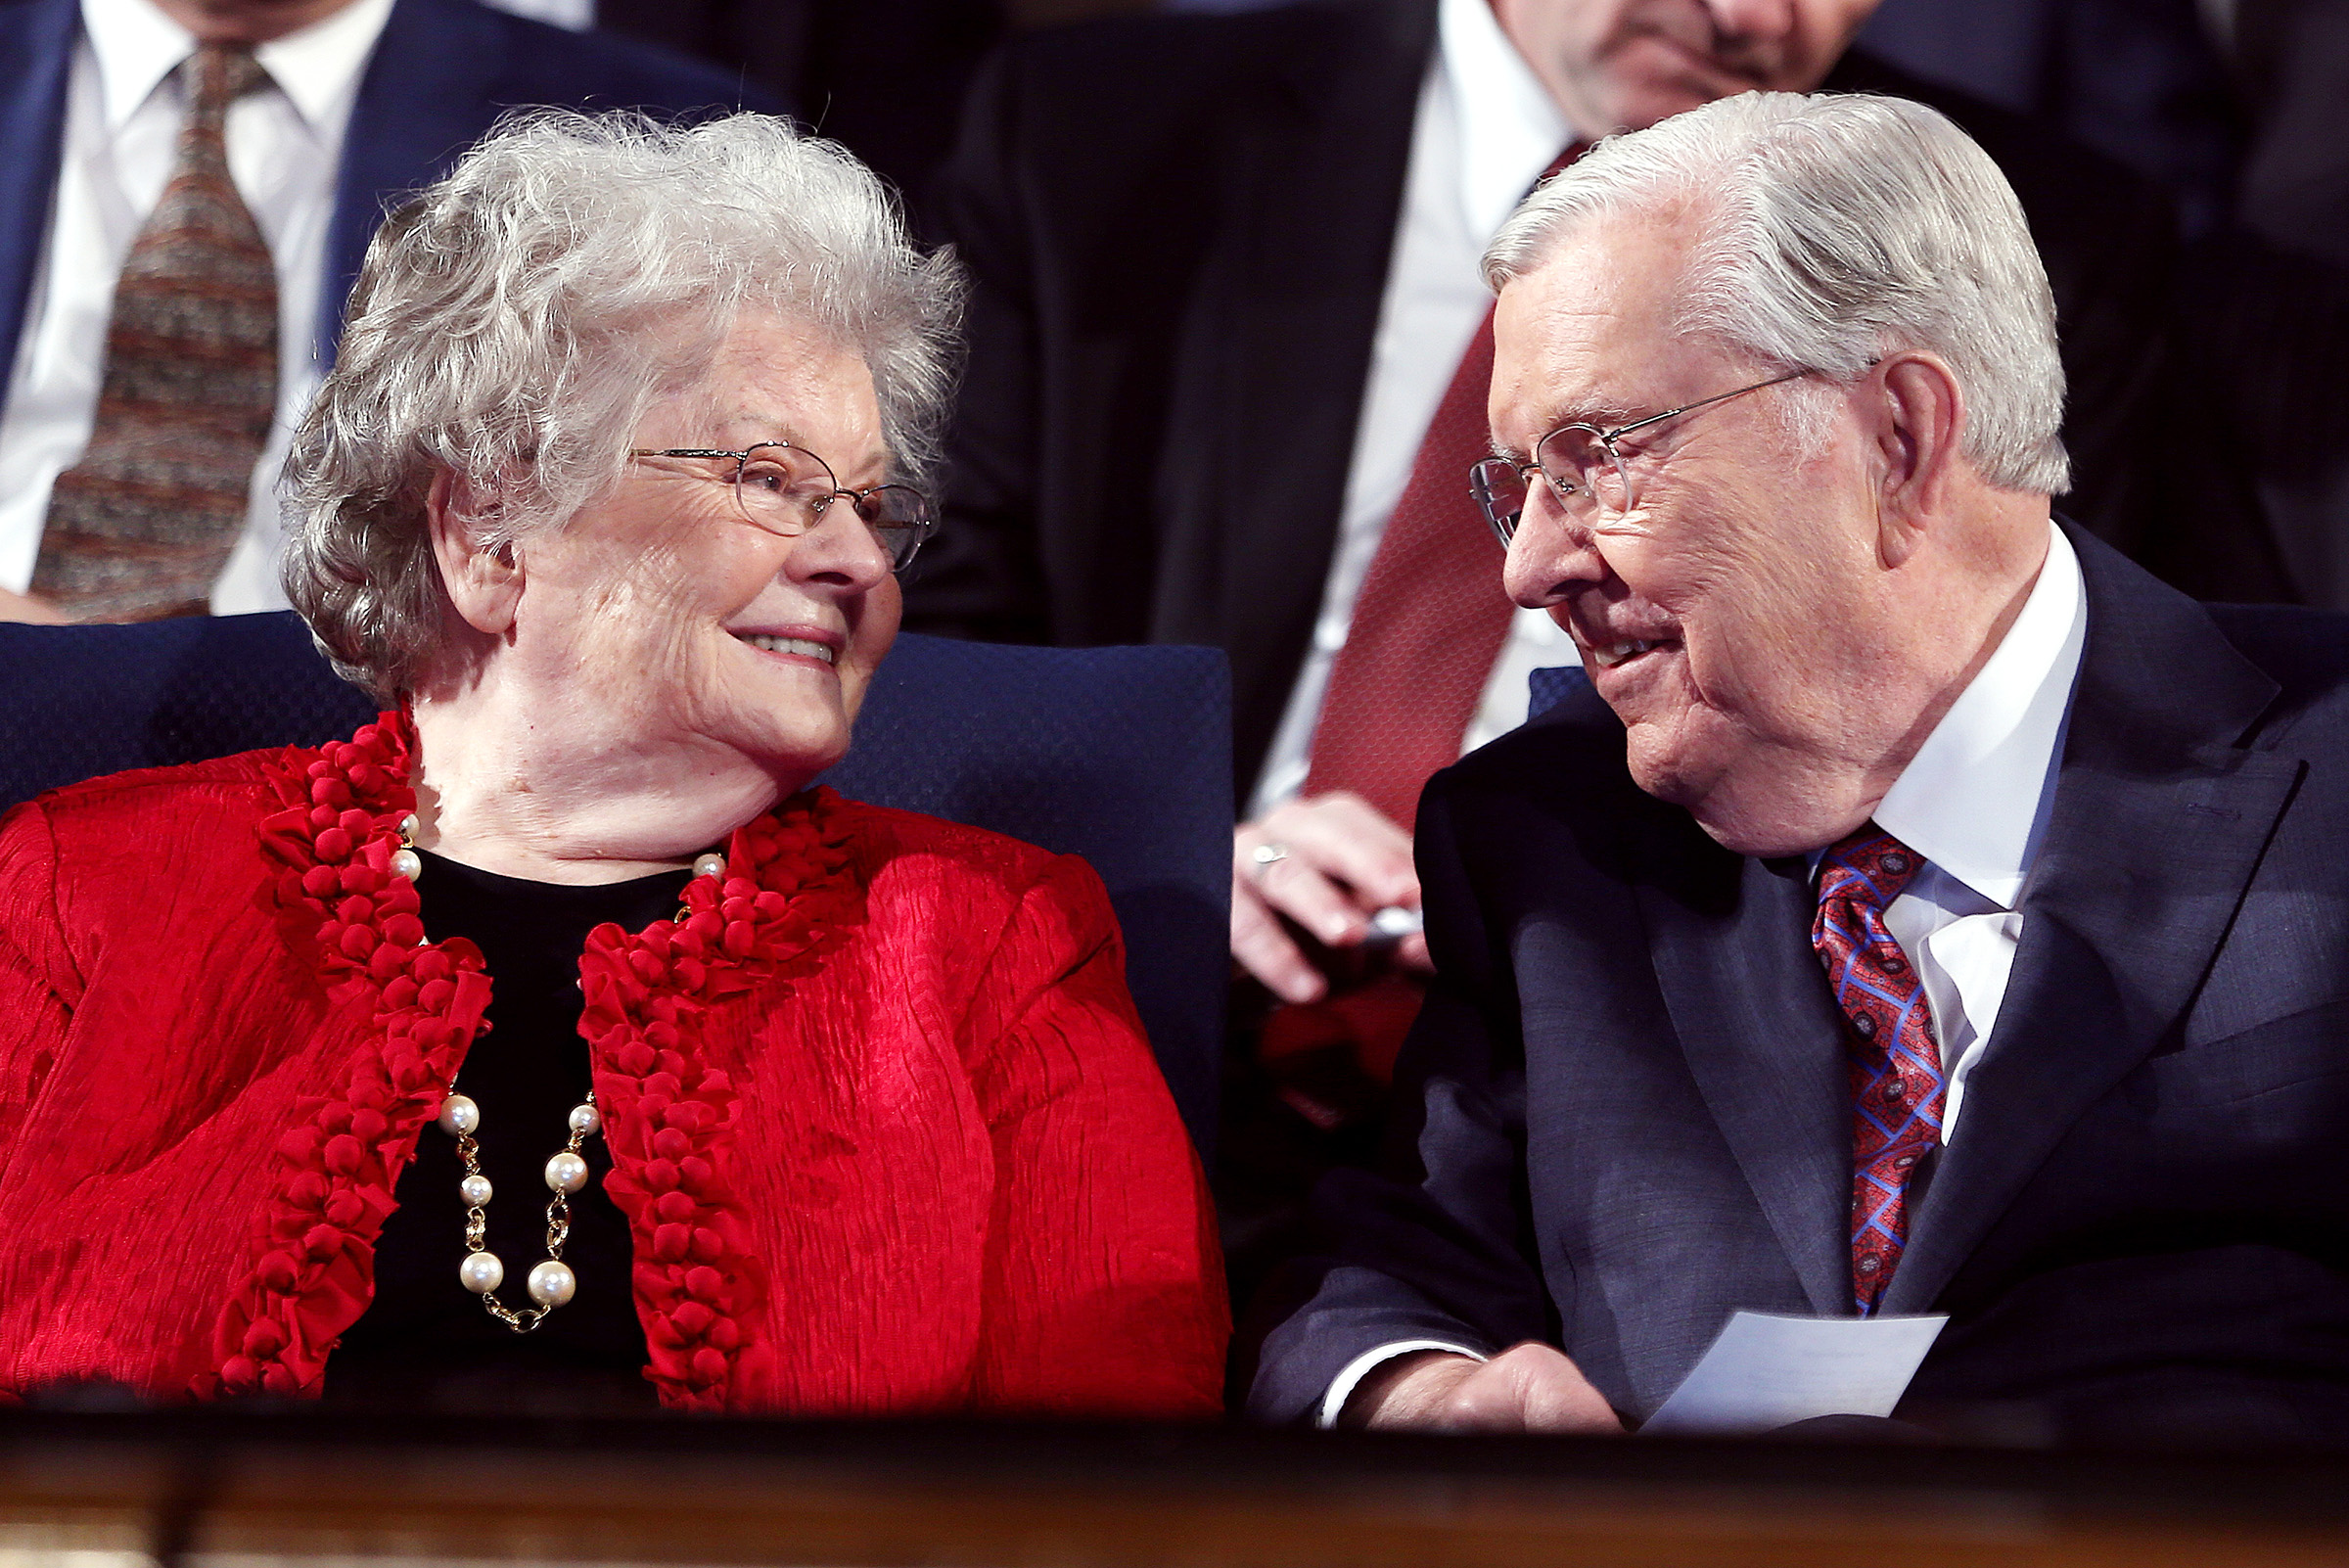 Elder M. Russell Ballard of the Quorum of the Twelve Apostles of The Church of Jesus Christ of Latter-day Saints and his wife Barbara smile at each other prior to Elder Ballard speaking to Brigham Young University students during a campus devotional held in the Marriott Center in Provo on Tuesday, Nov. 14, 2017.